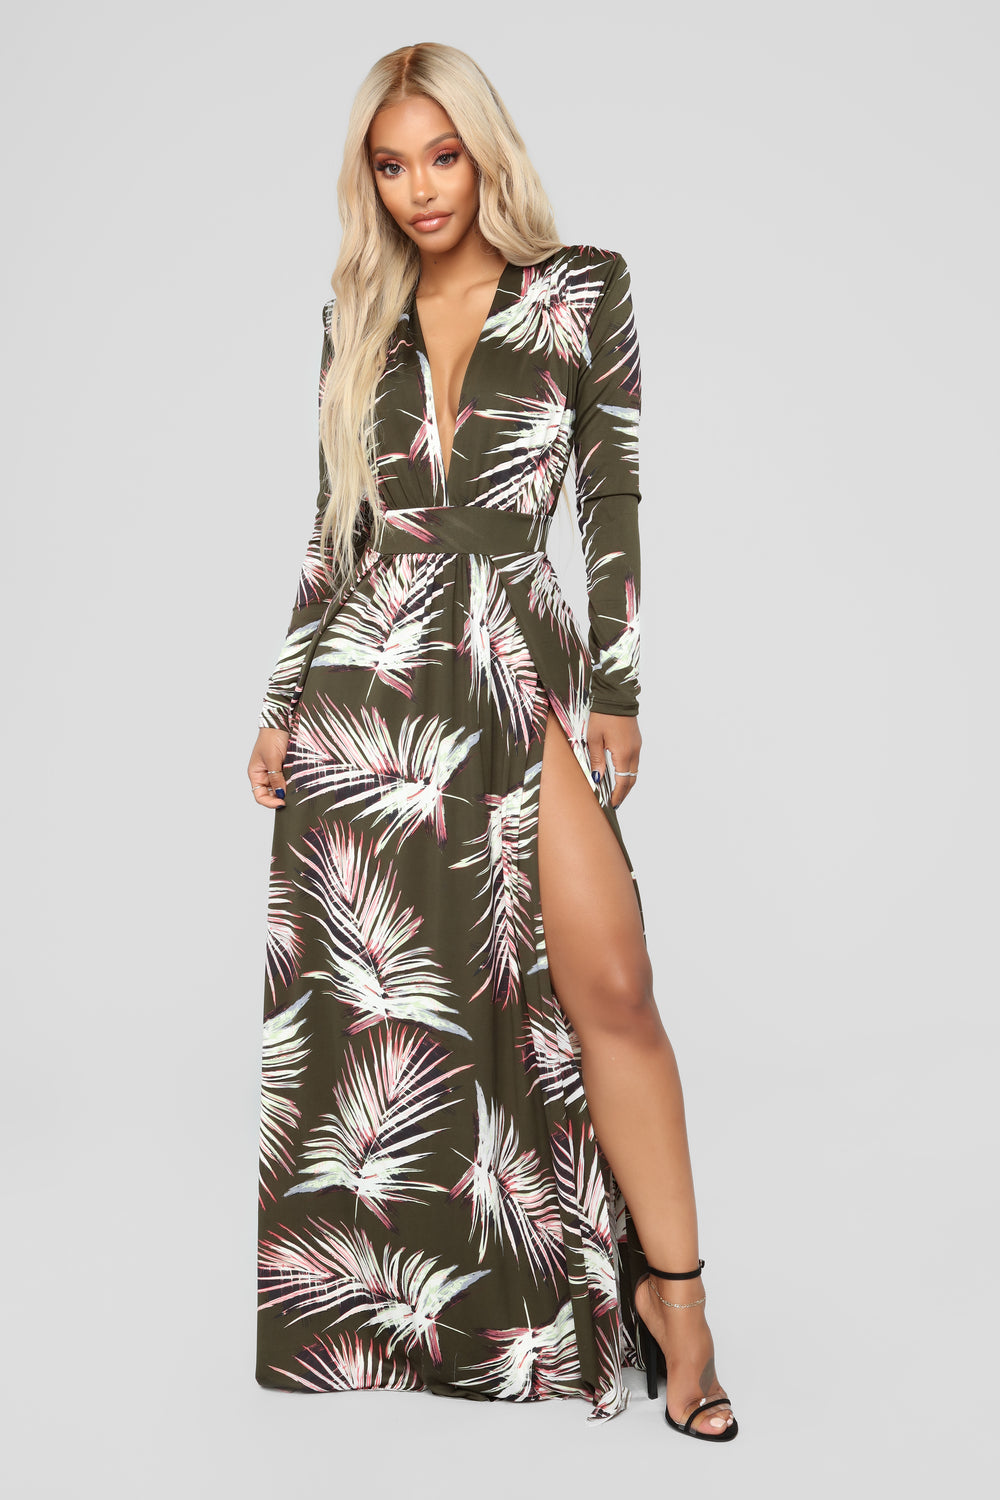 Spending Spree Dress - Olive